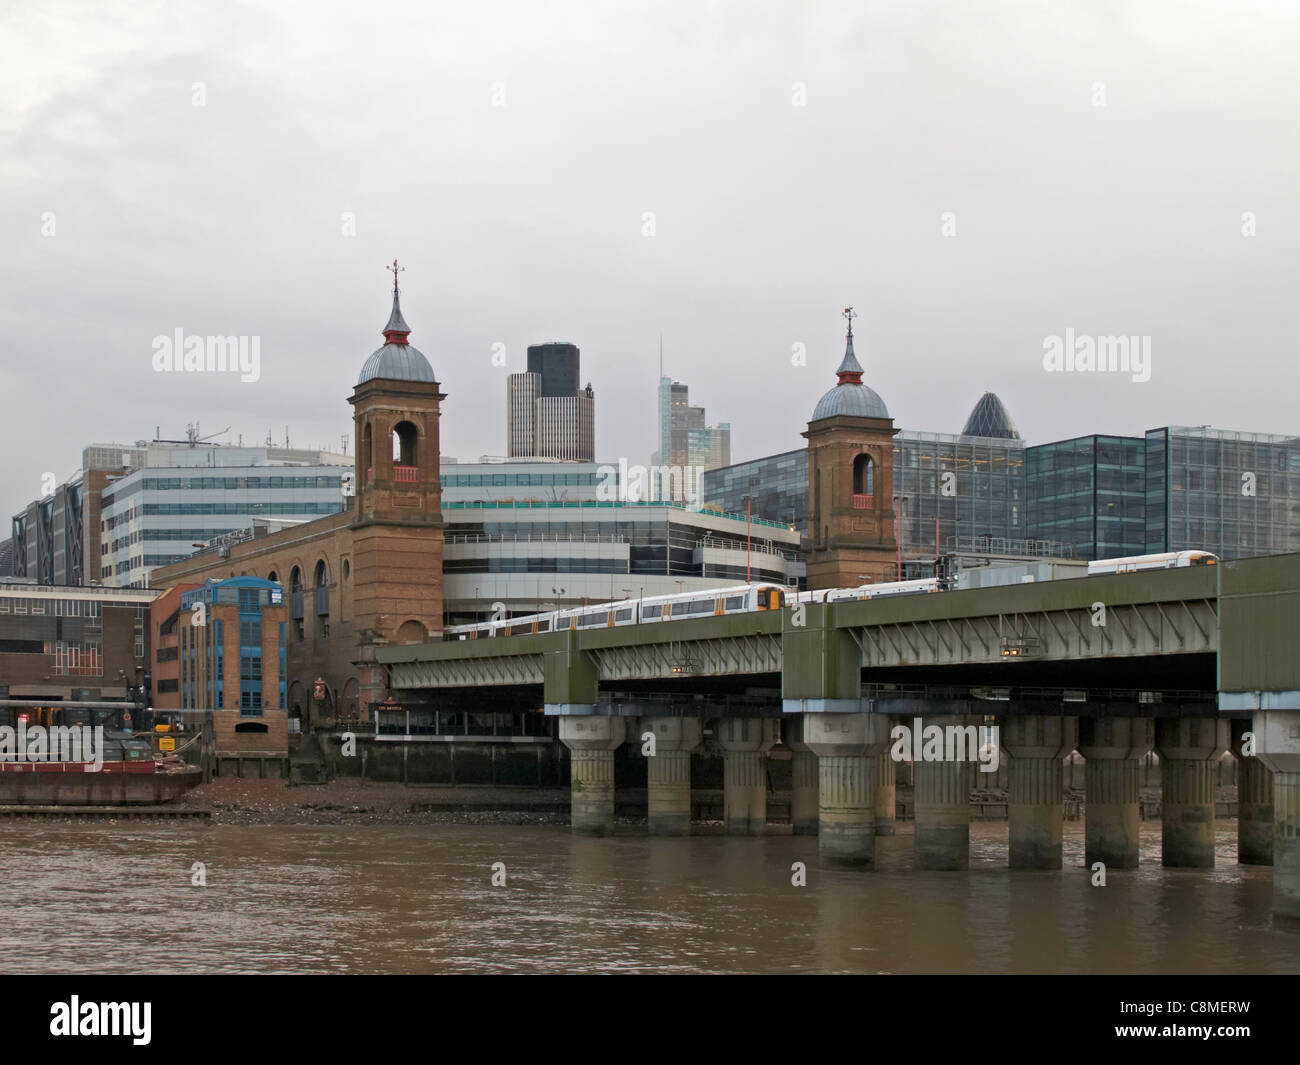 London Cannon street station from Southwark - Stock Image